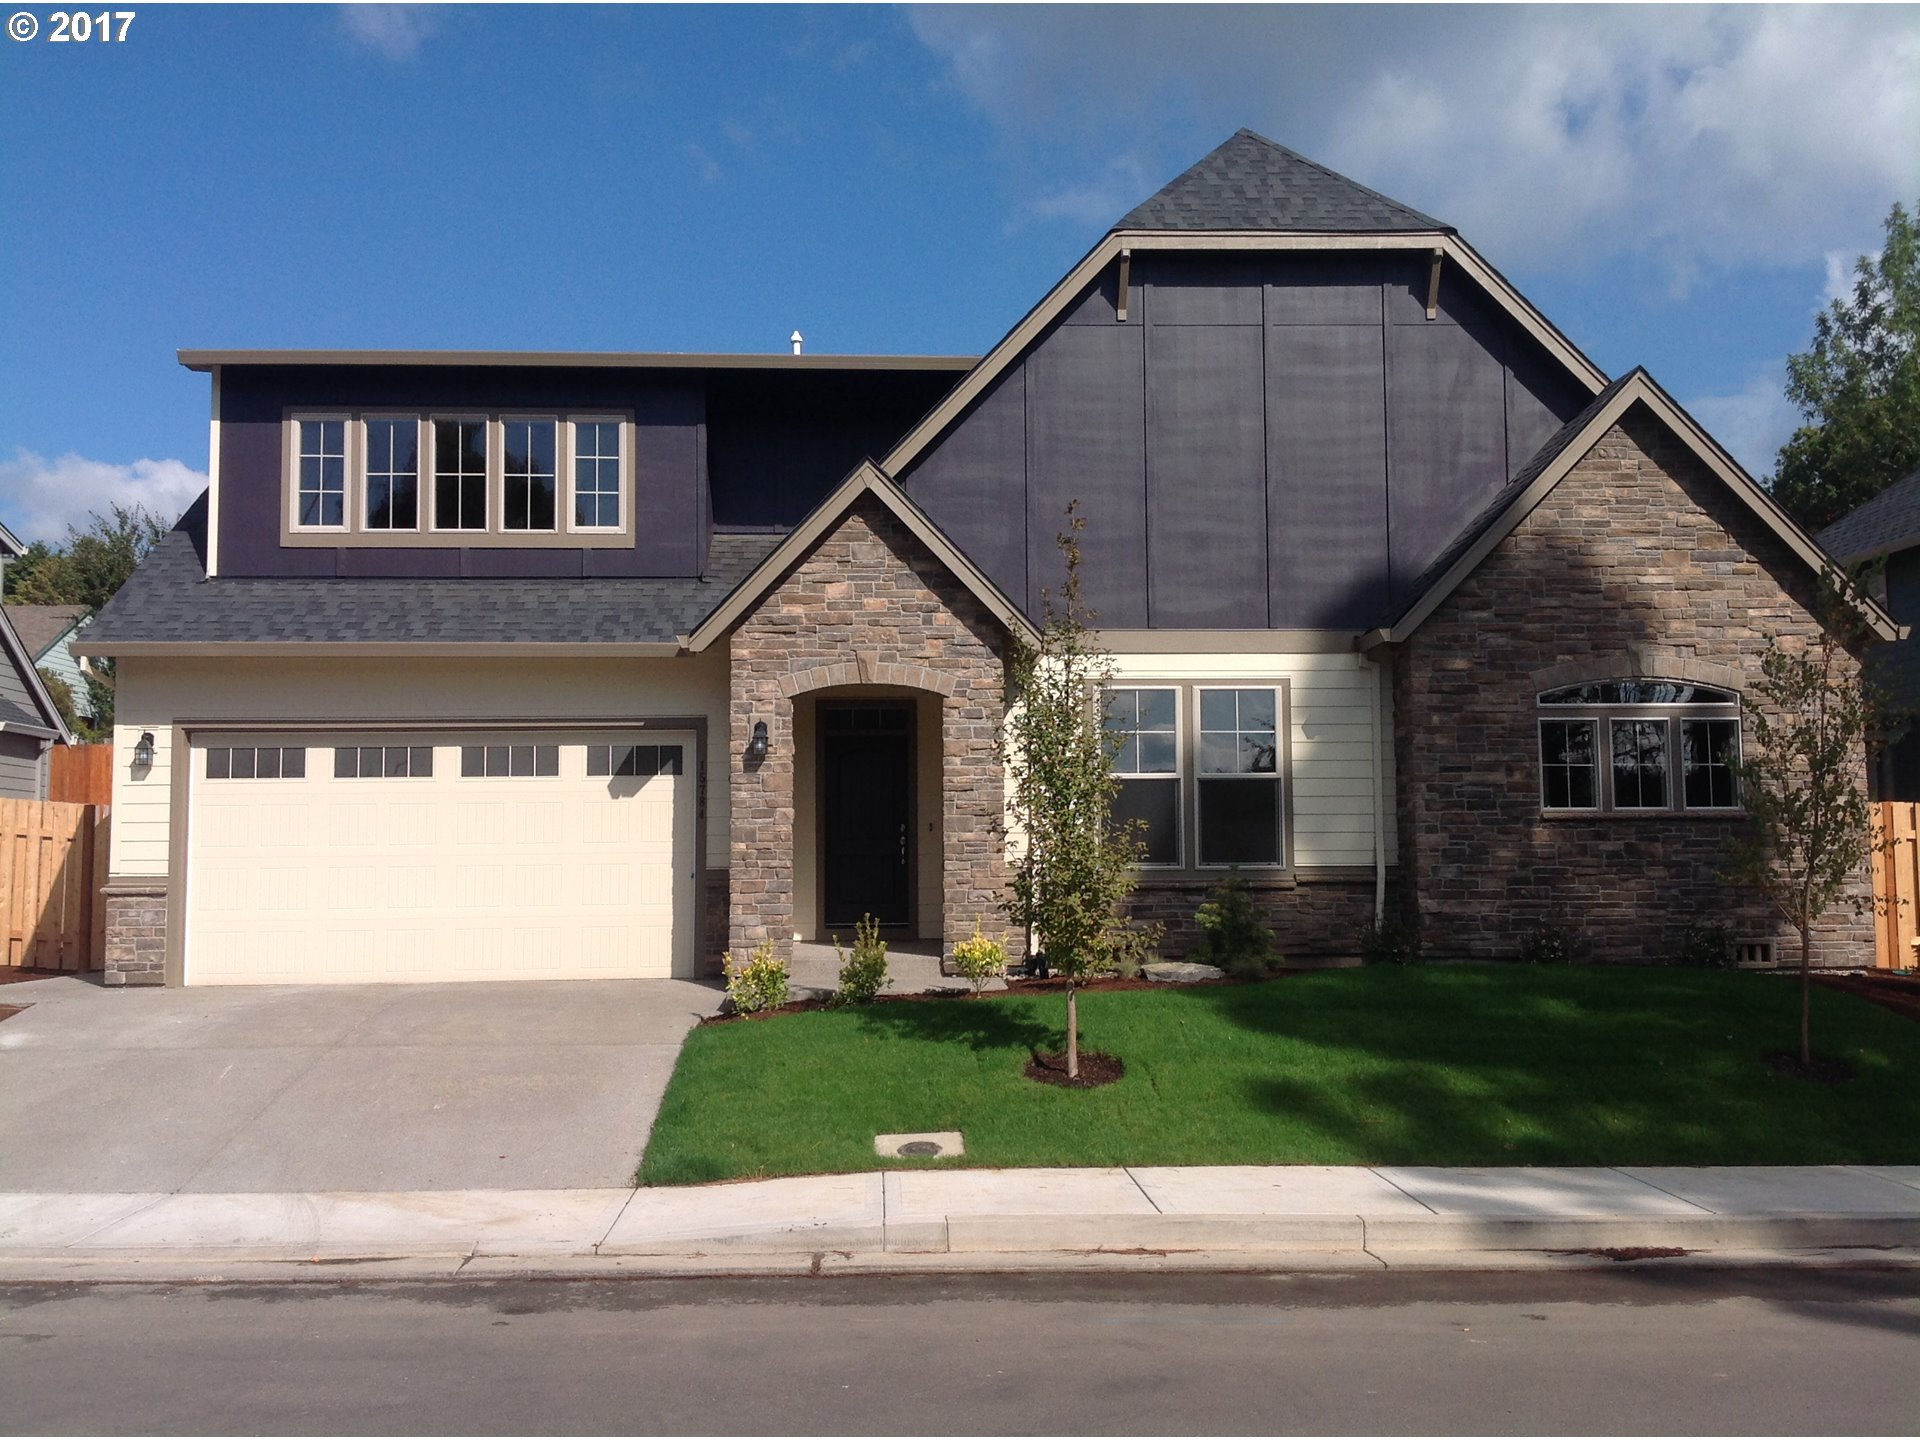 Builder Bucks $8000 towards anything. Oak Grove's newest neighborhood Concord Oaks. Open floor plan with designer finishes. Slab granite kitchen counter. SS Appliances. Covered Patio. Rendering and photos for visual reference only